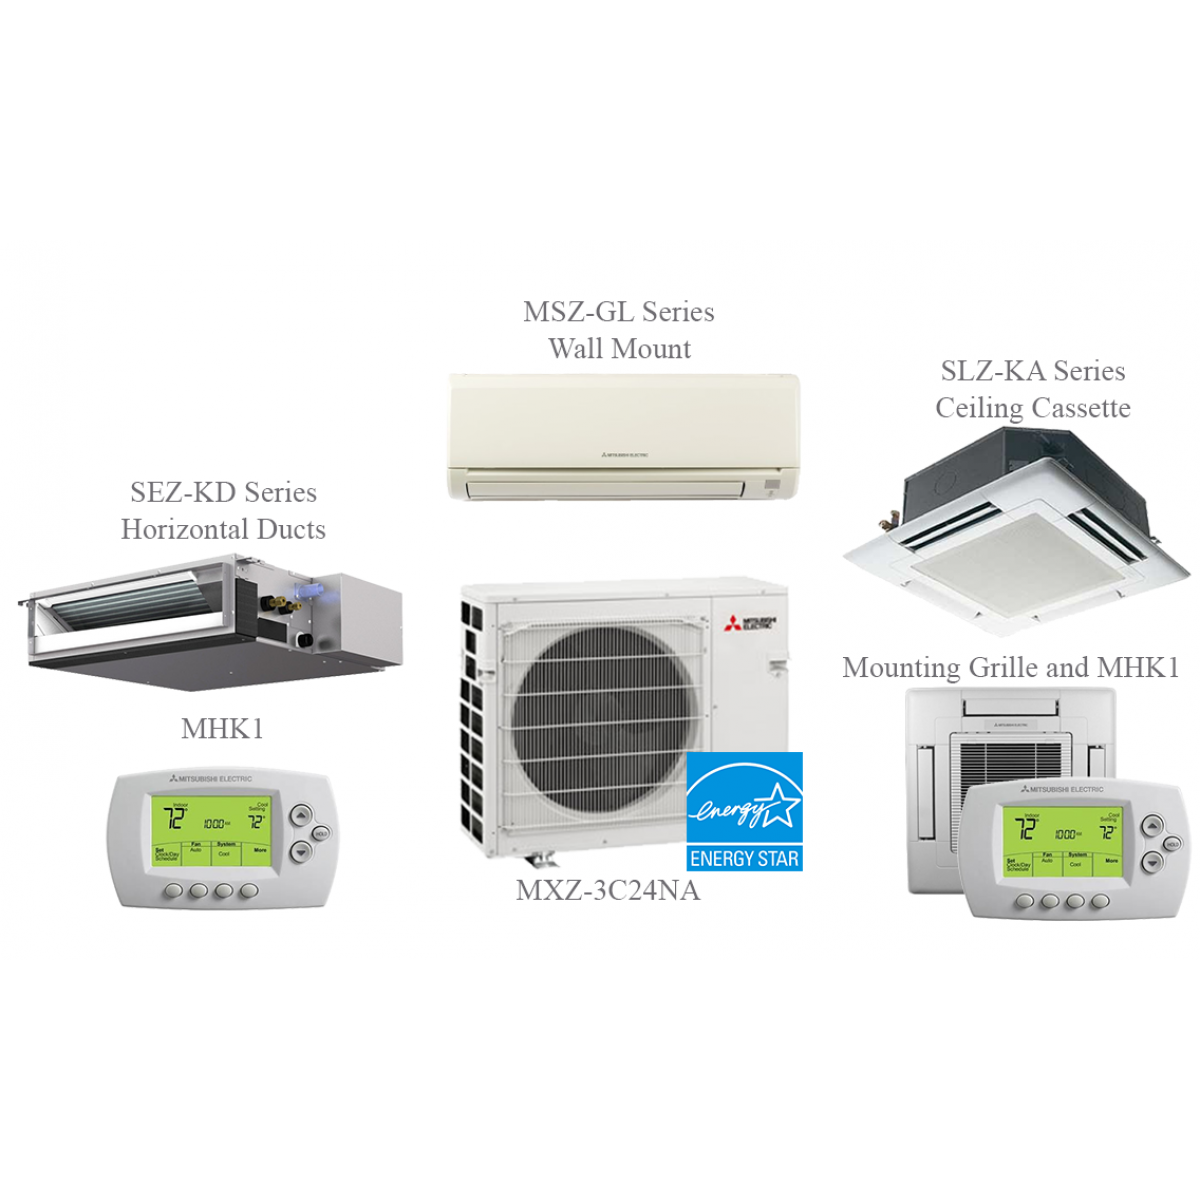 Indoor Heating And Cooling Units : Mxz a na split air conditioning and heating k btu